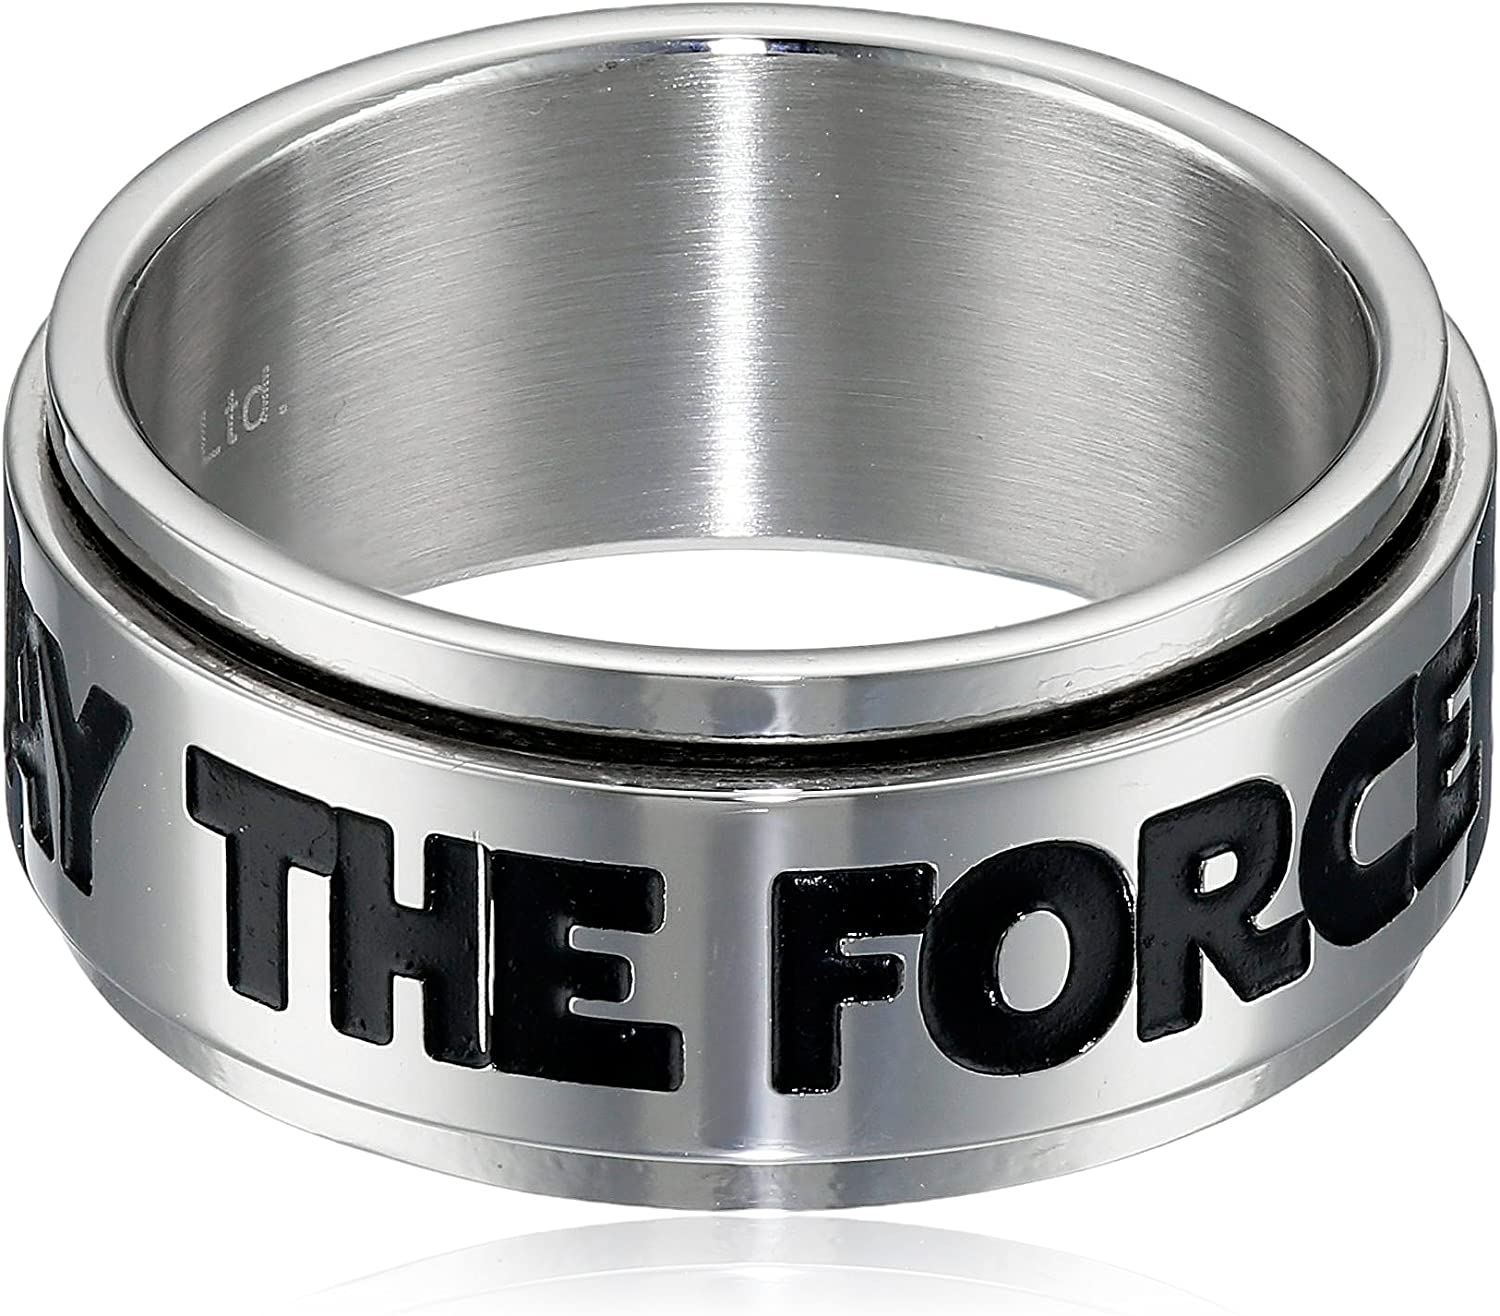 Star Wars Jewelry Men's May The Force Be with You Stainless Steel Spinner Ring